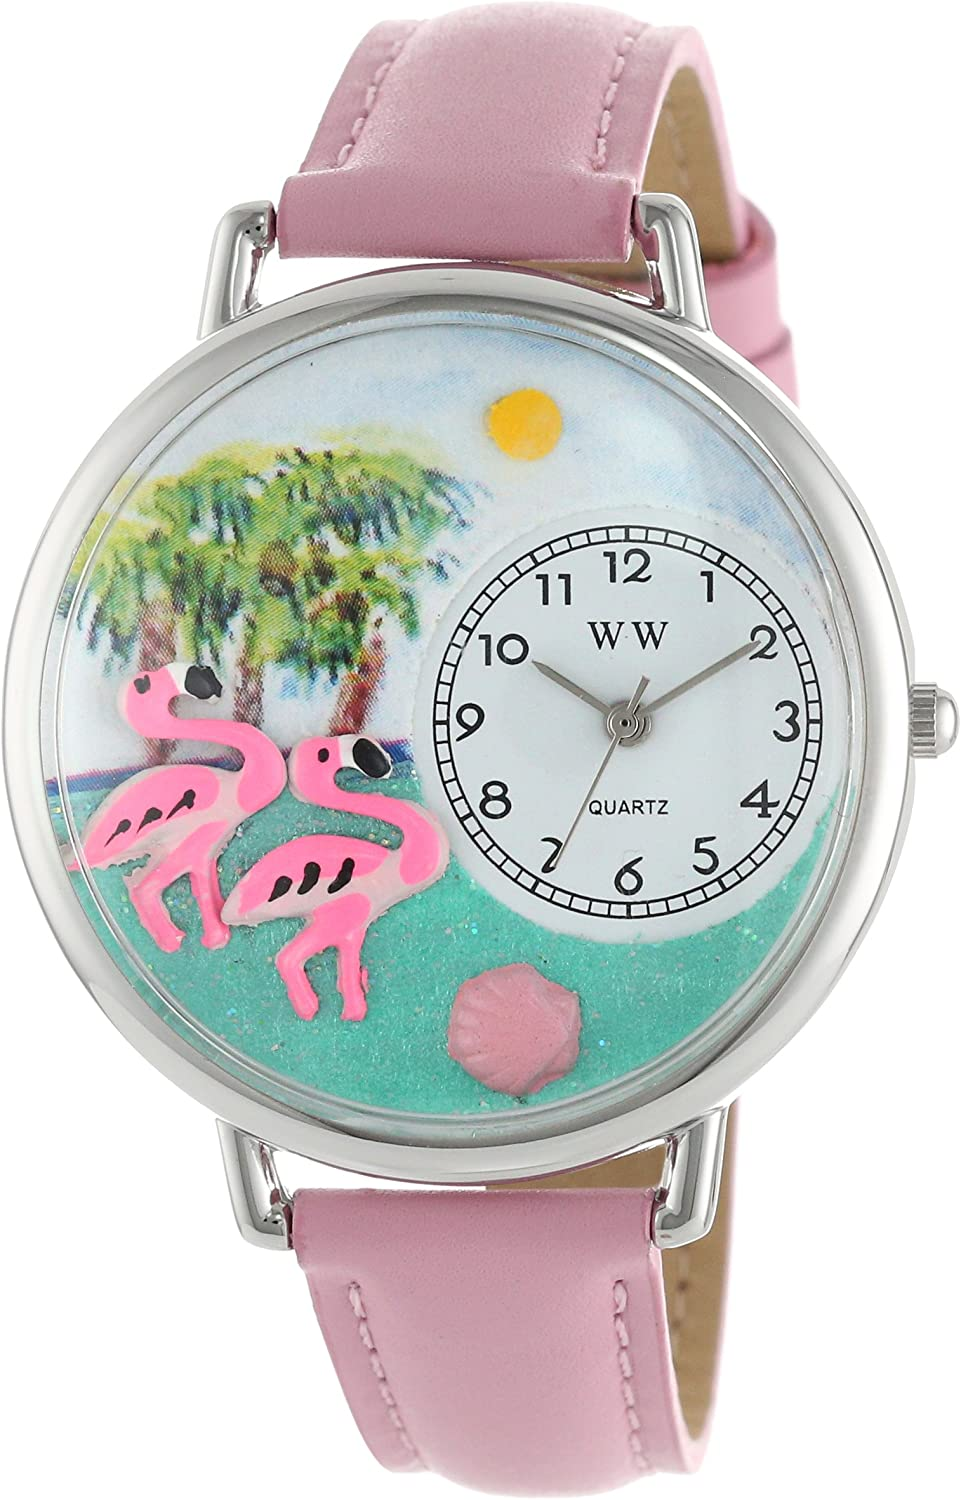 Don't miss the campaign Flamingo Watch in Large Max 50% OFF Silver